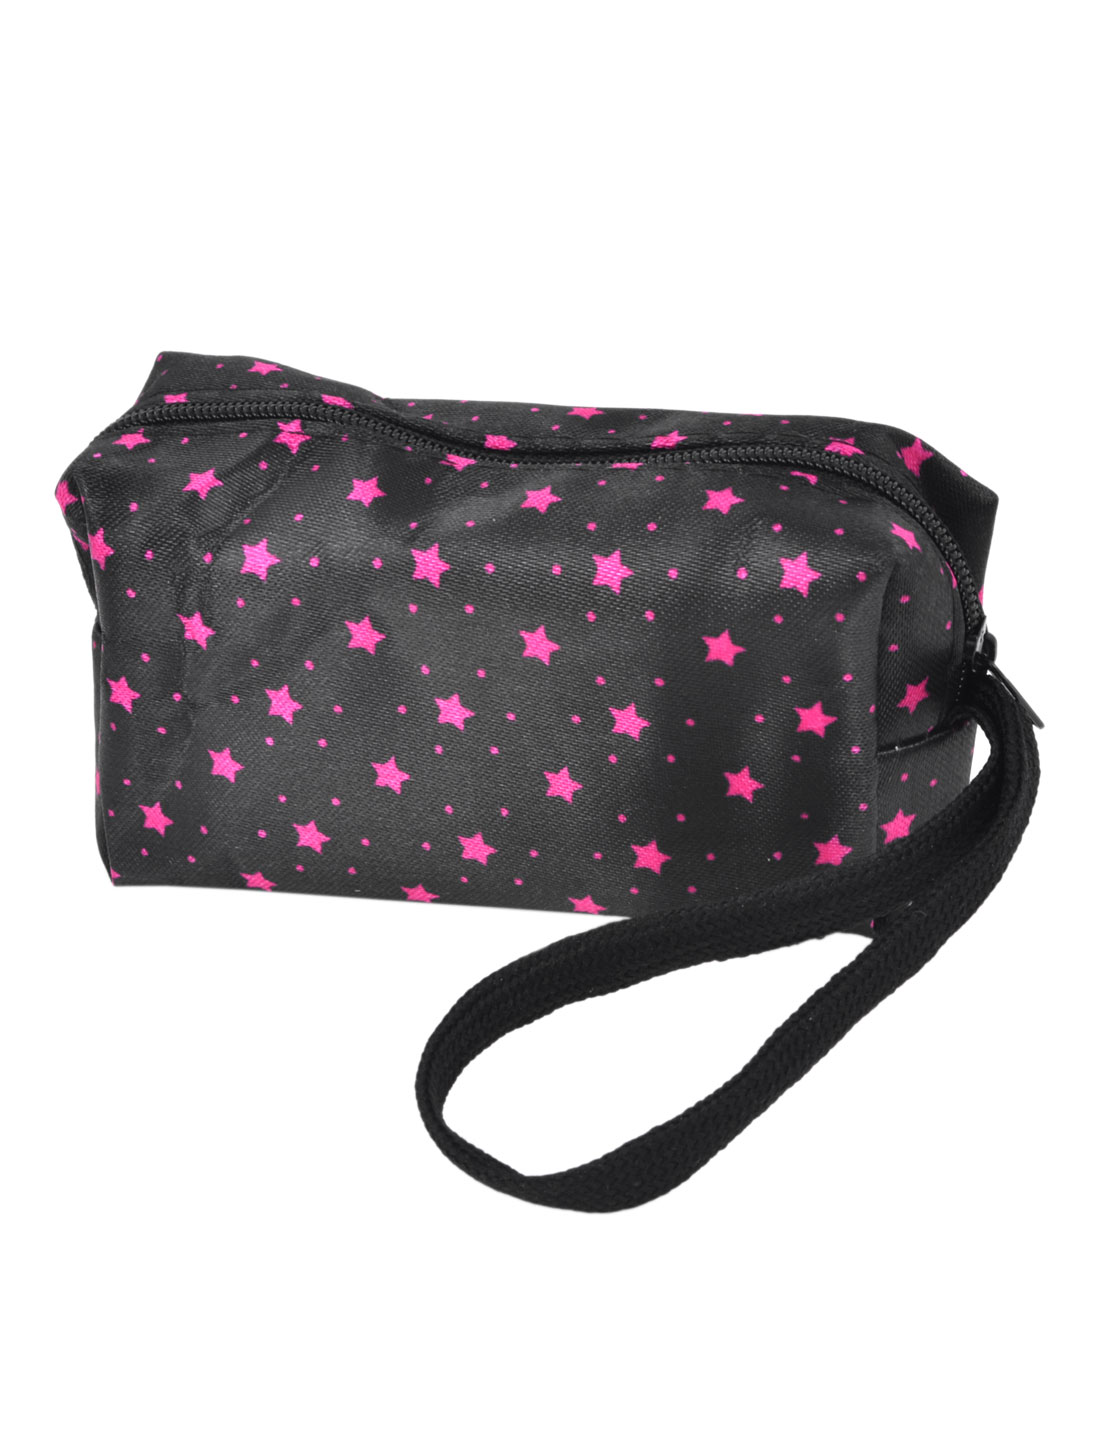 Fuchsia Star Pattern Black Nylon Change Wallet Coin Purse Pouch w Strap for Lady